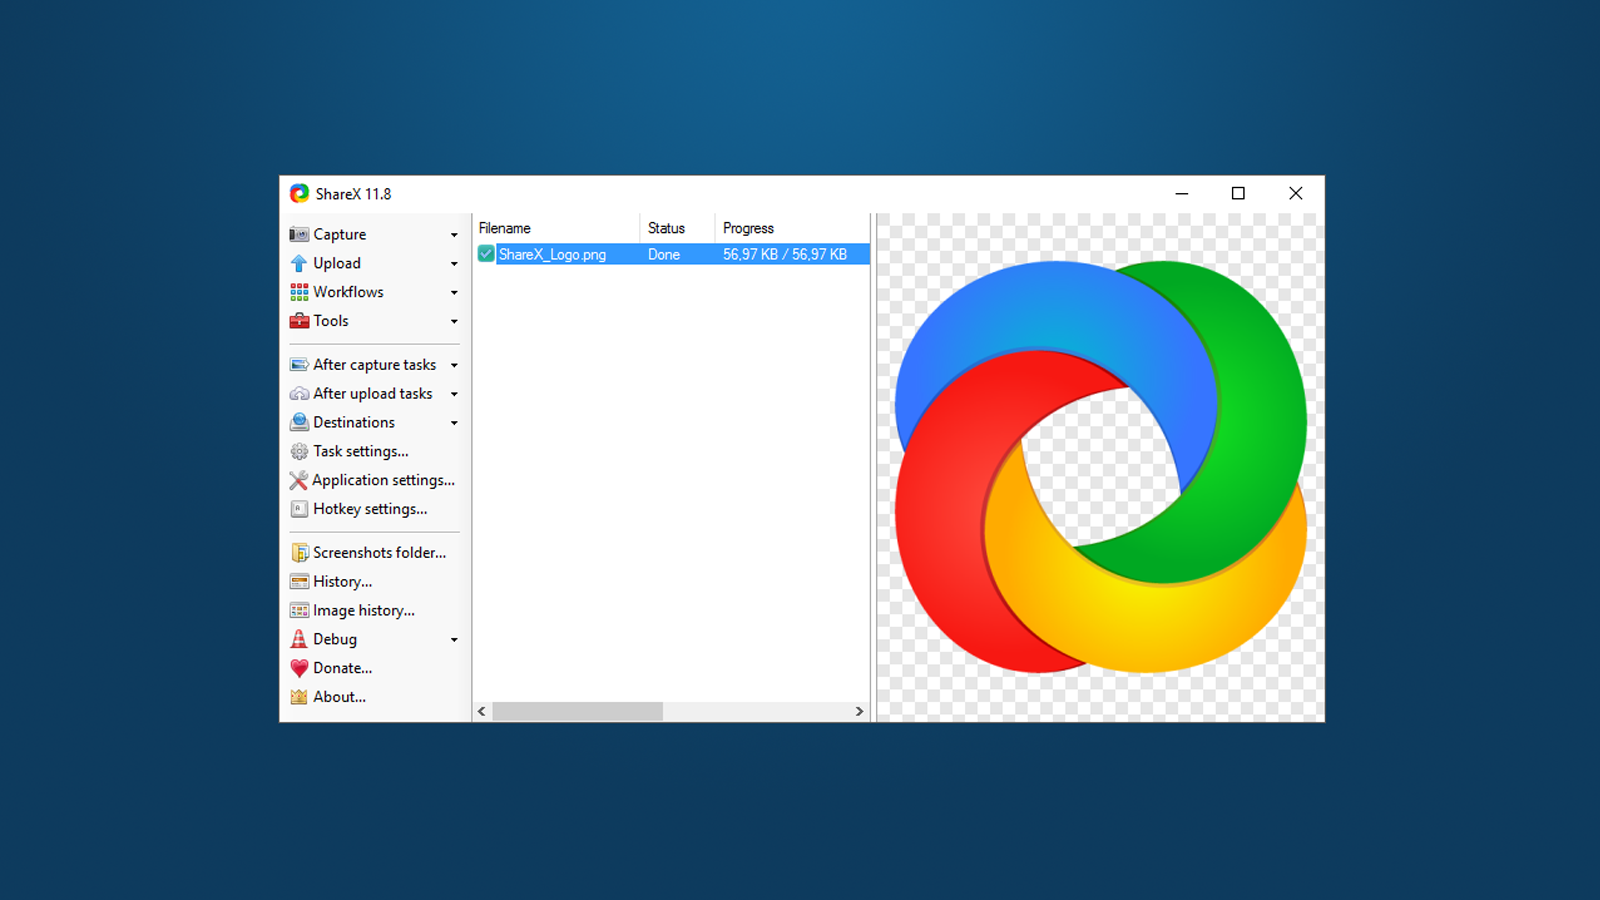 ShareX home screen for starting an image capture